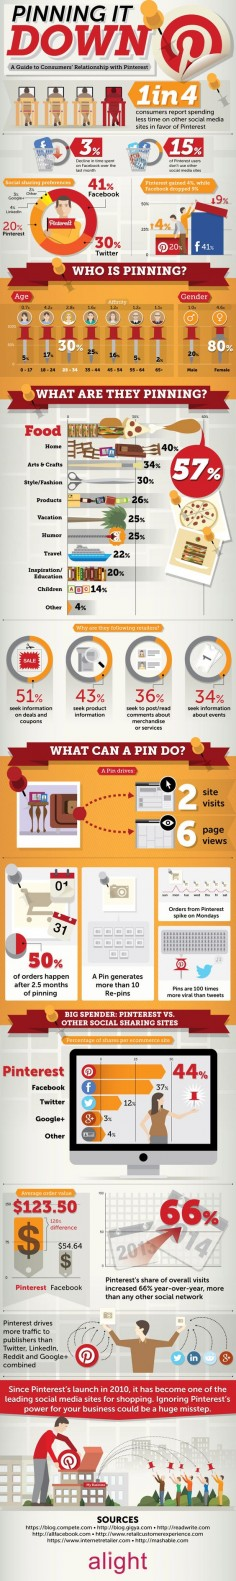 A Guide to Consumers' Relationship with #Pinterest